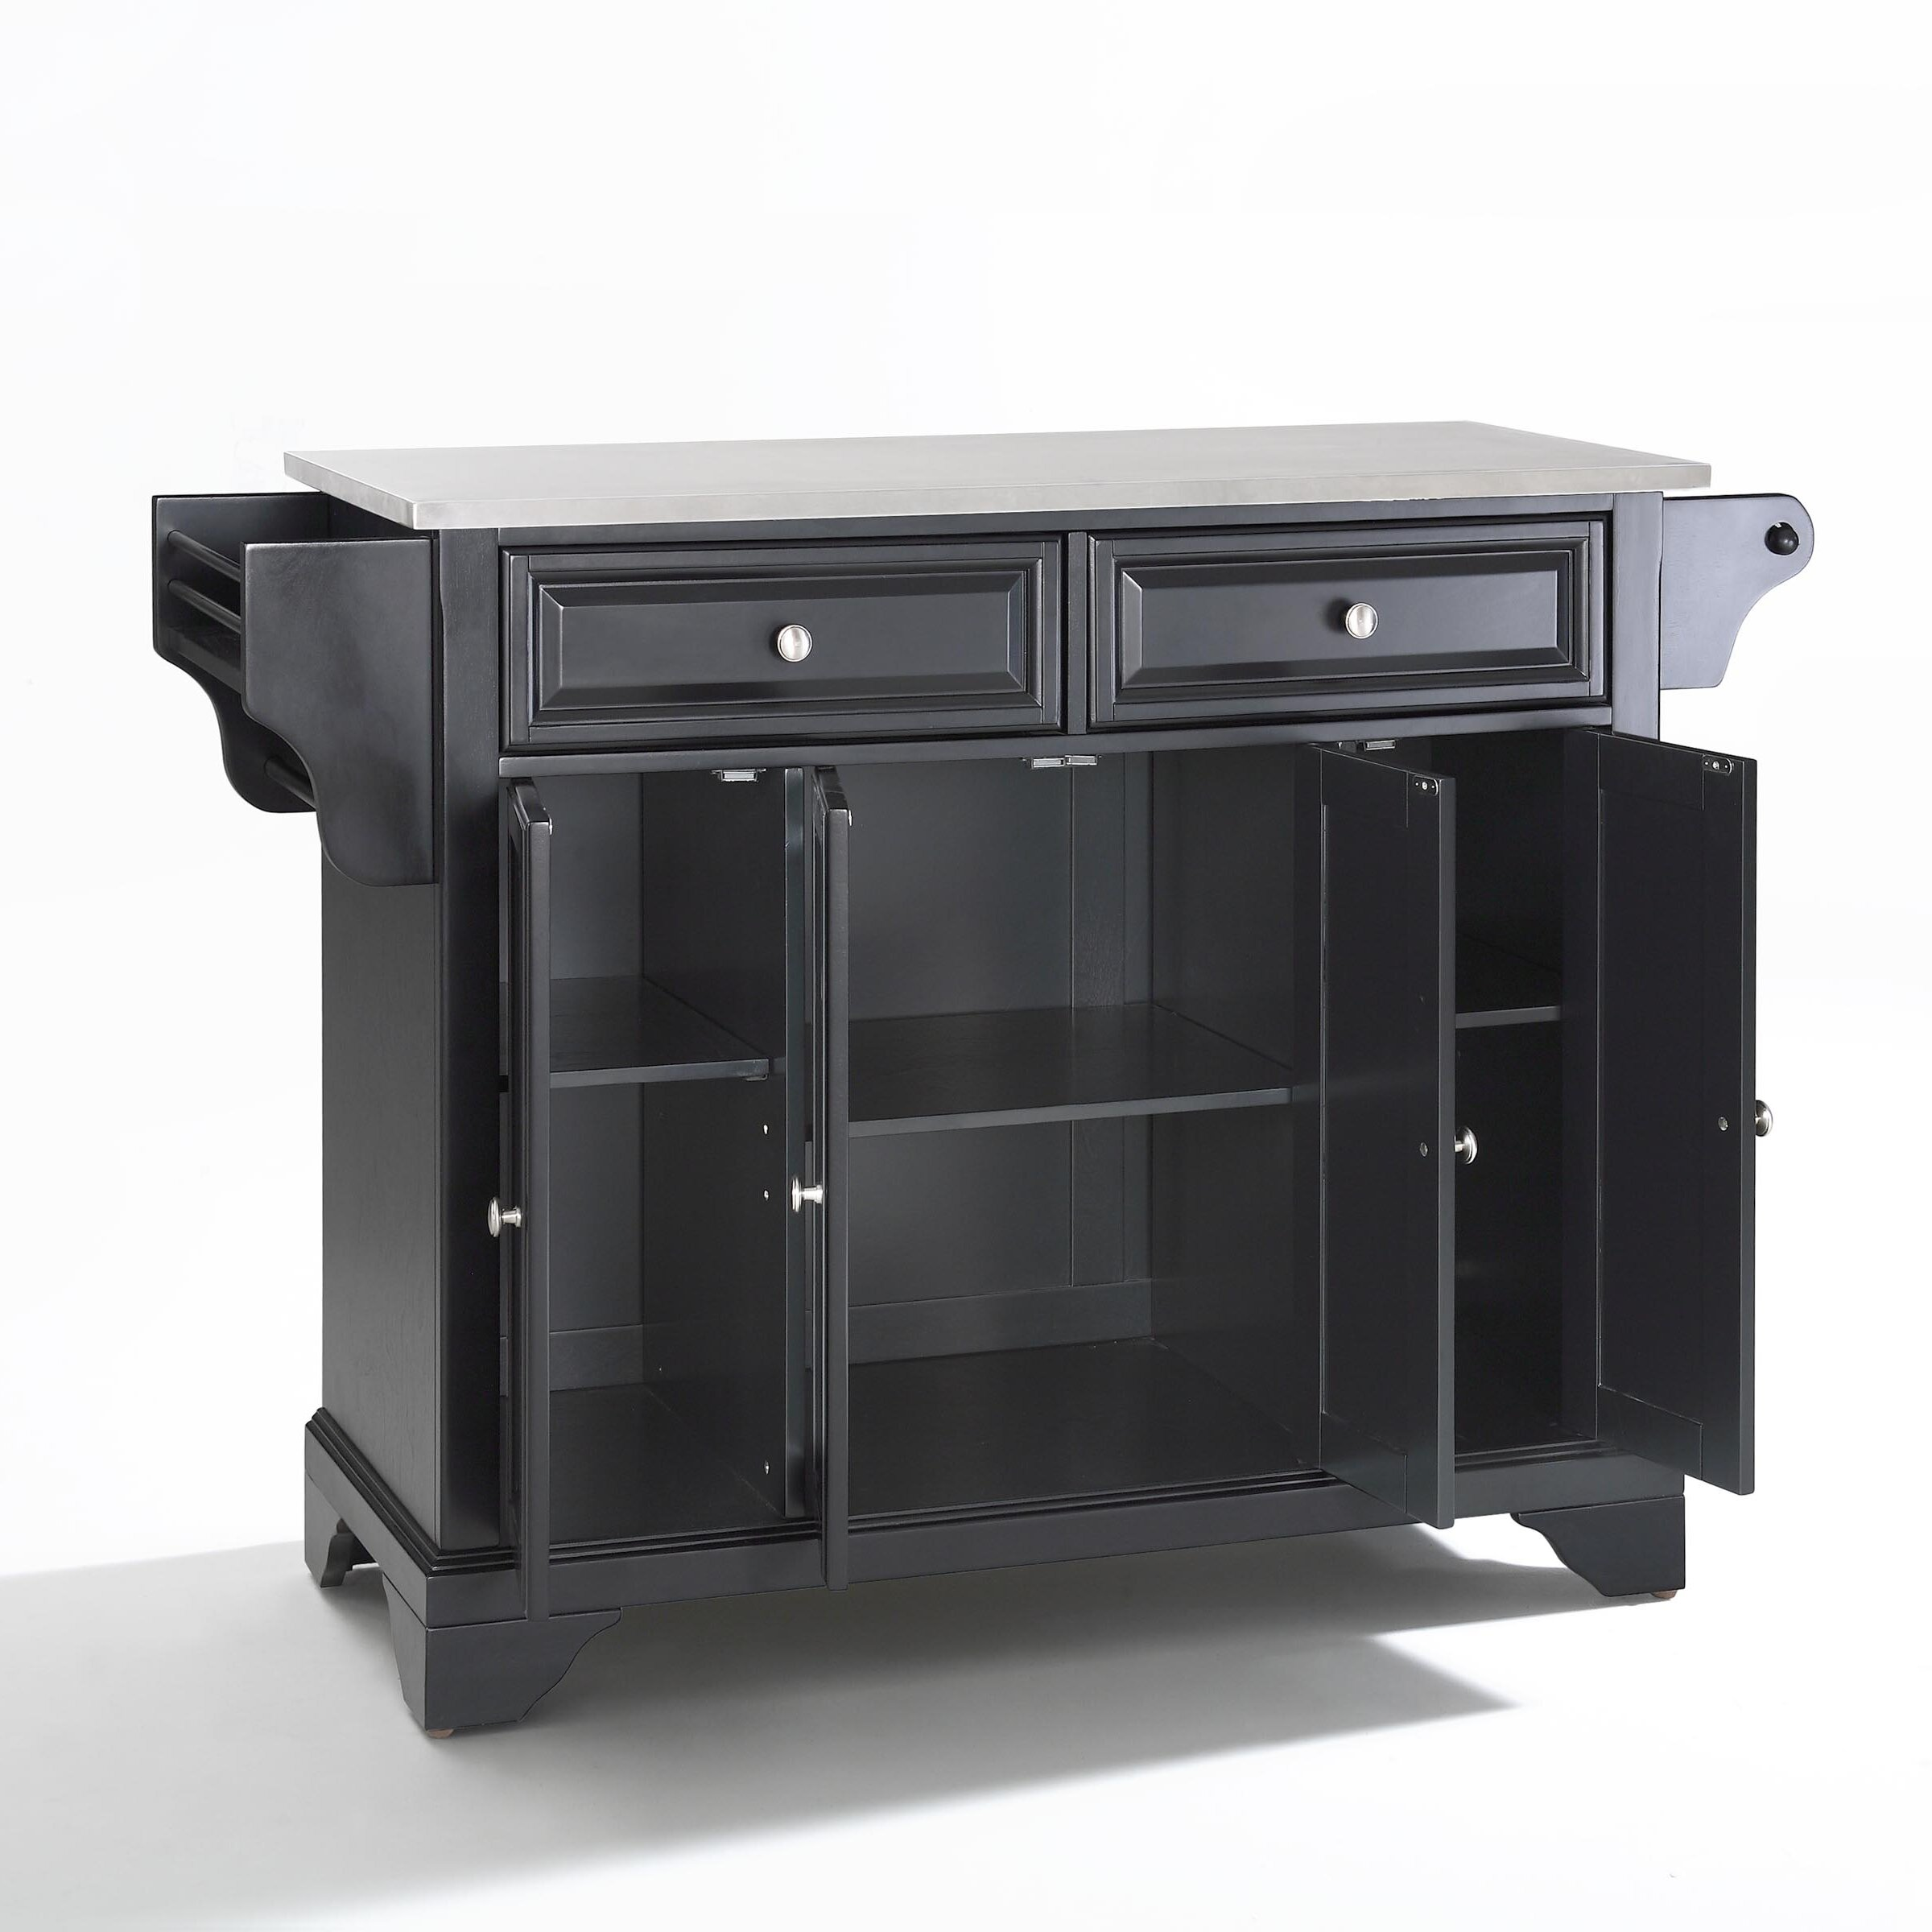 Crosley LaFayette Kitchen Island with Stainless Steel Top